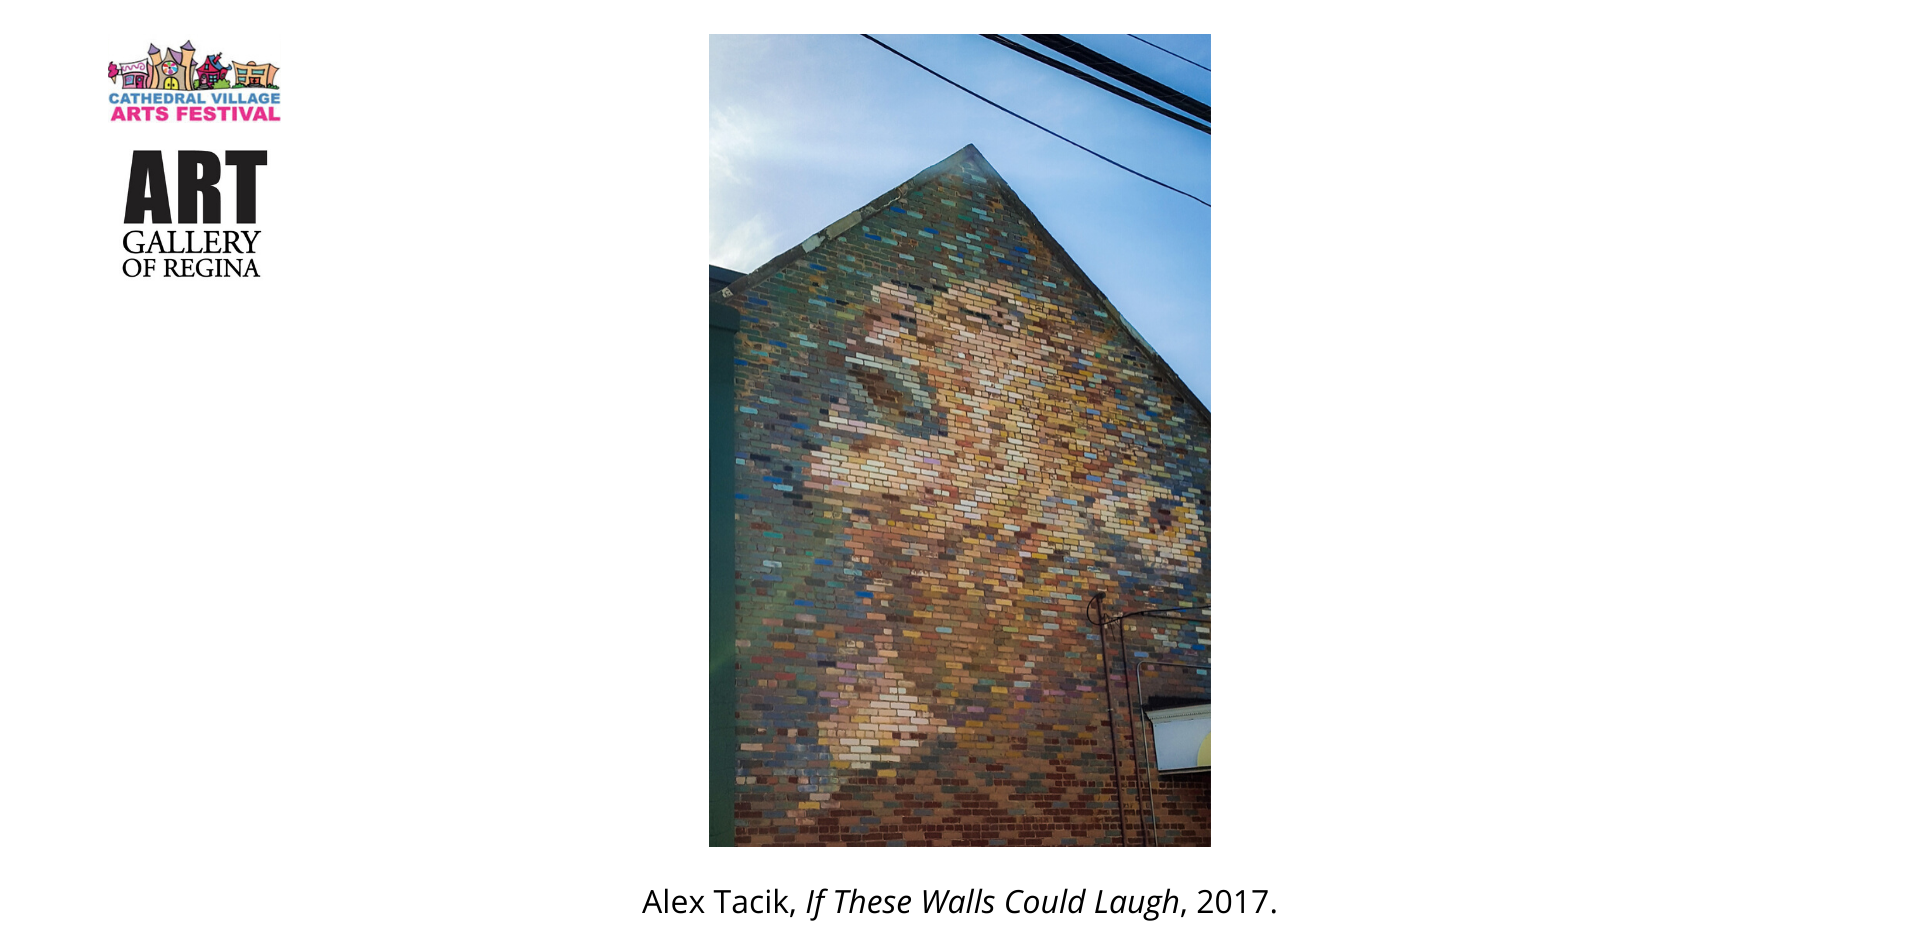 Alex Tacik, If These Walls Could Laugh, 2017.